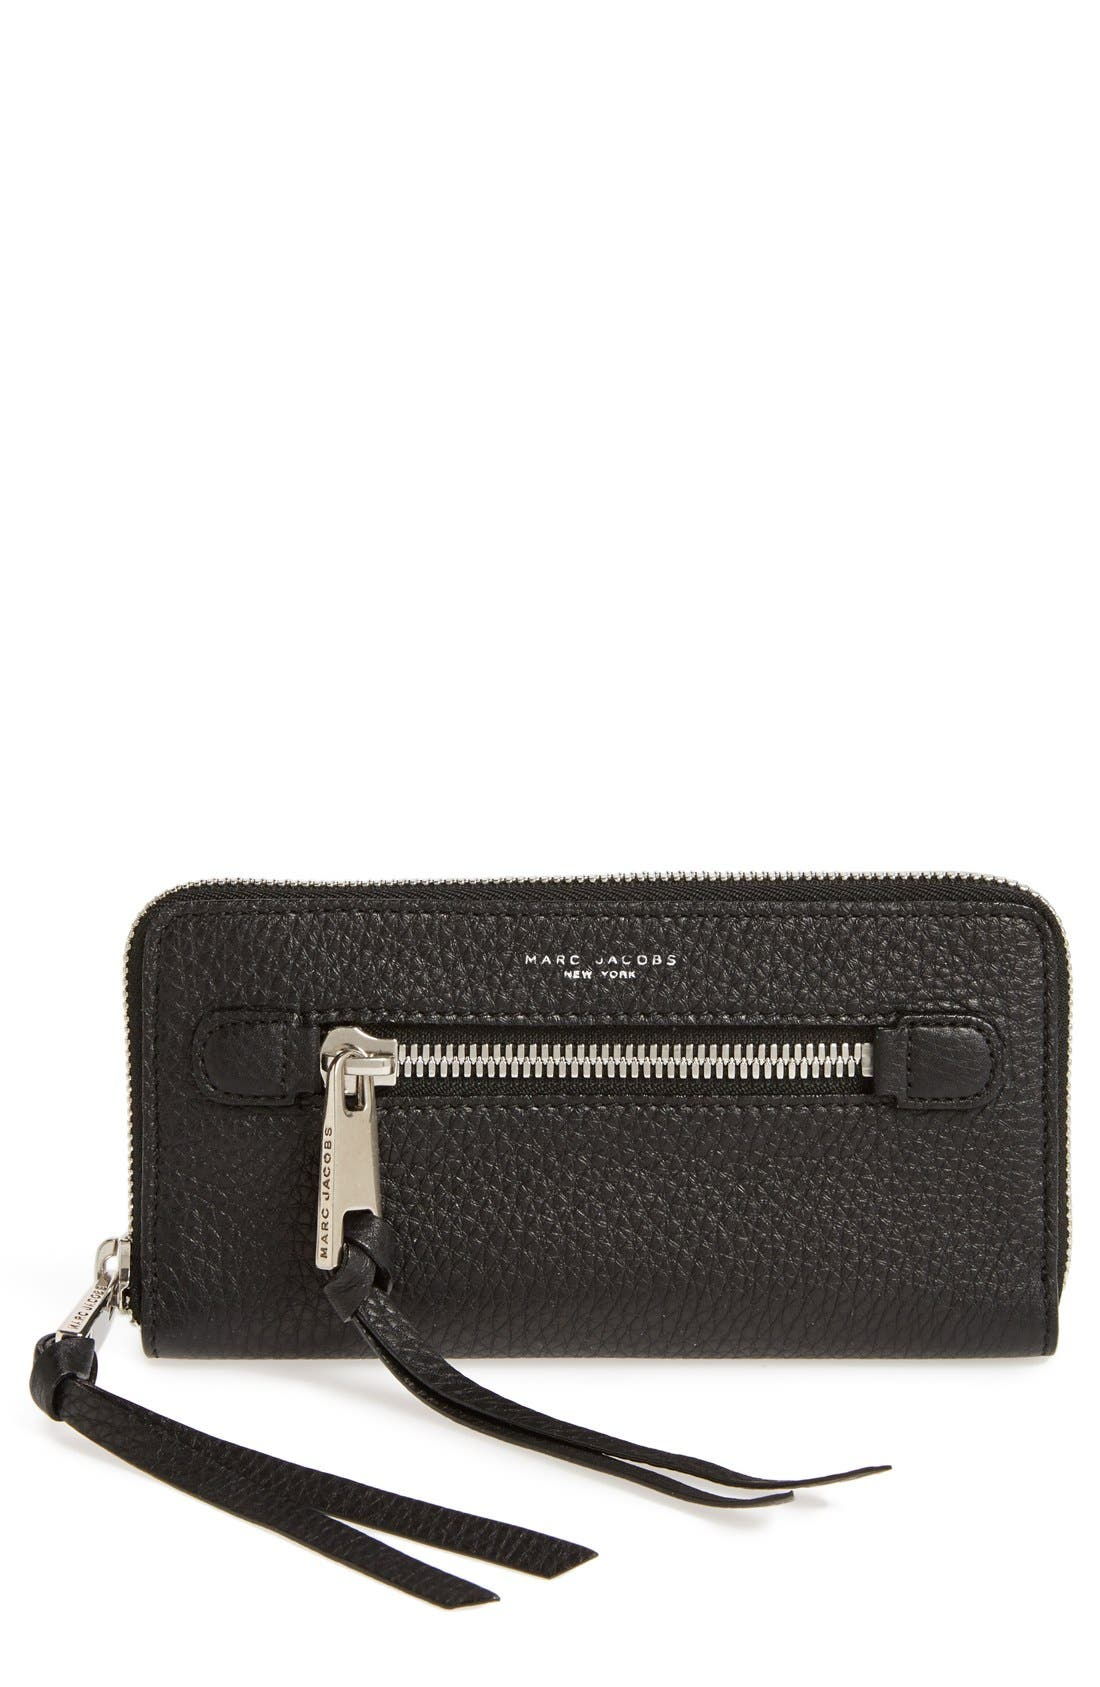 Alternate Image 1 Selected - MARC JACOBS 'Big Apple Deluxe' Calfskin Leather Wallet